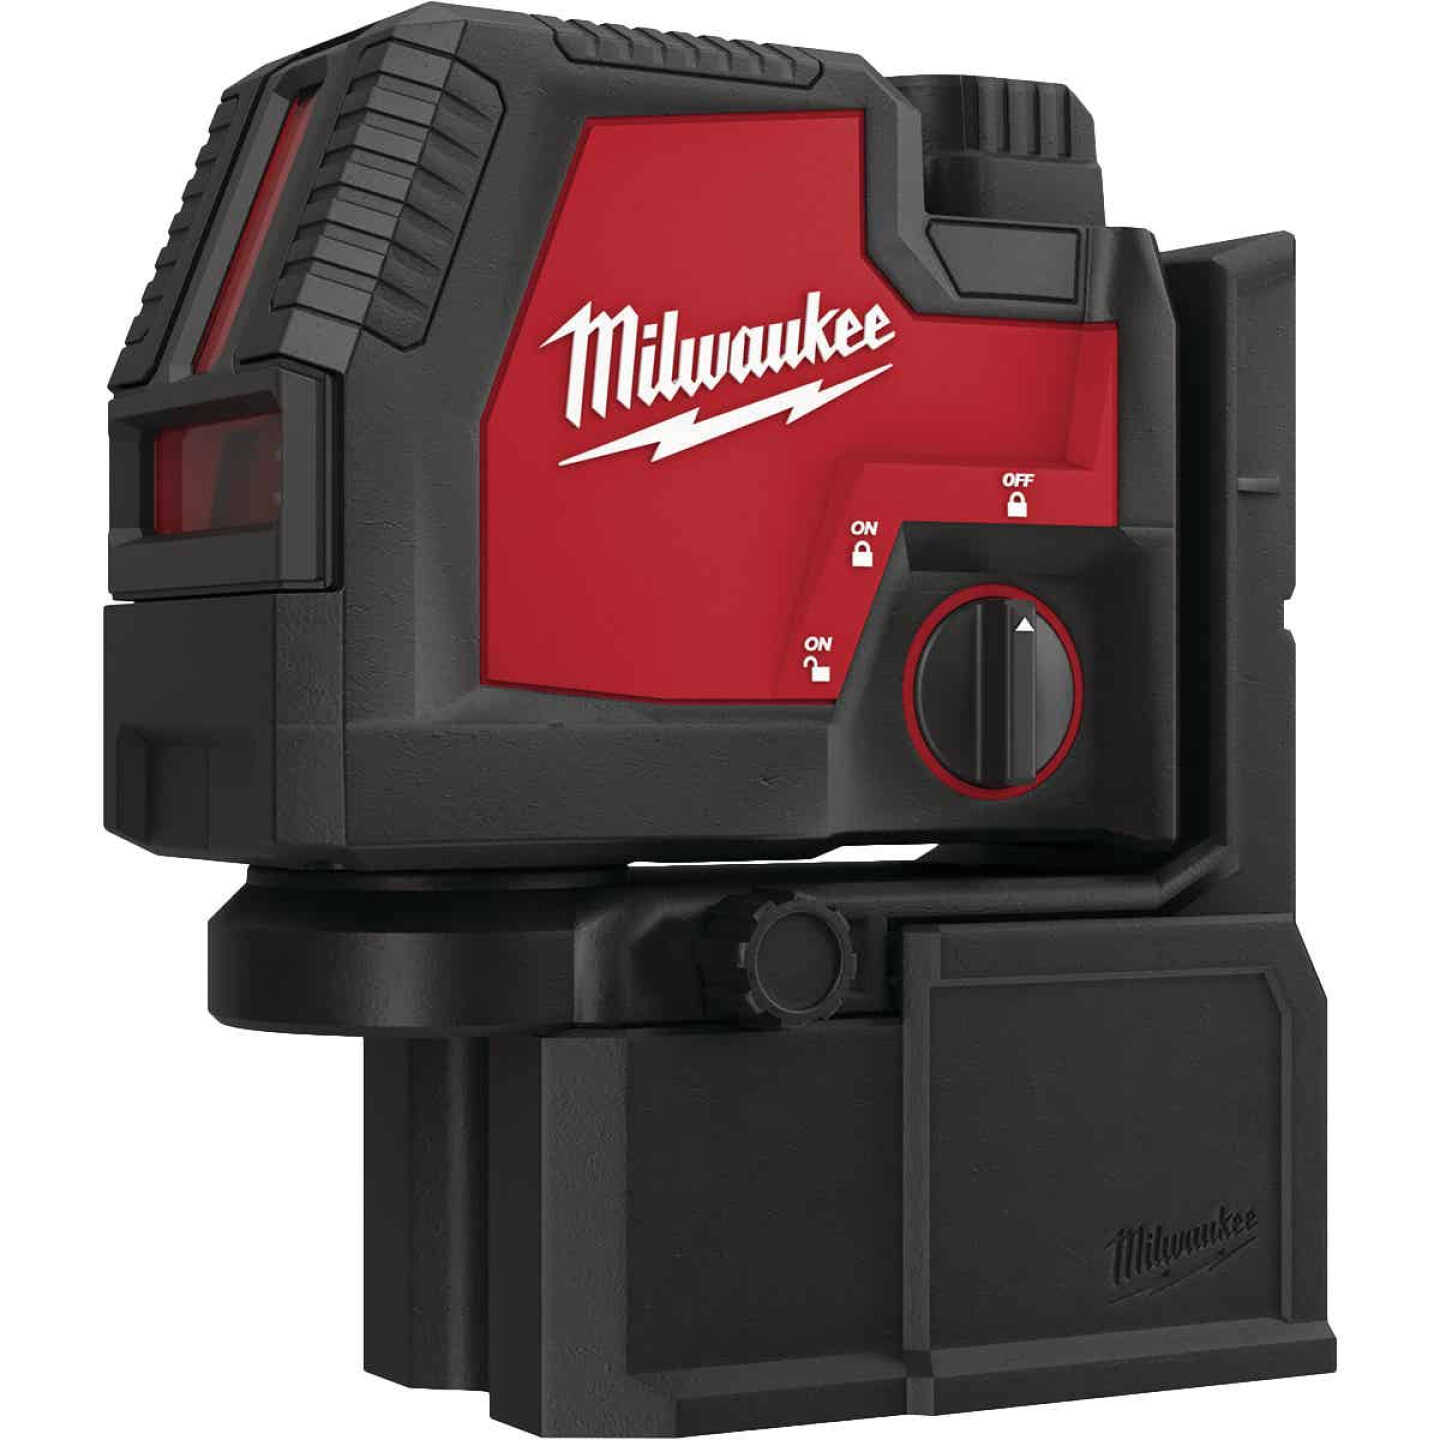 Milwaukee USB Rechargeable Green Cross Line & Plumb Points Laser Image 5